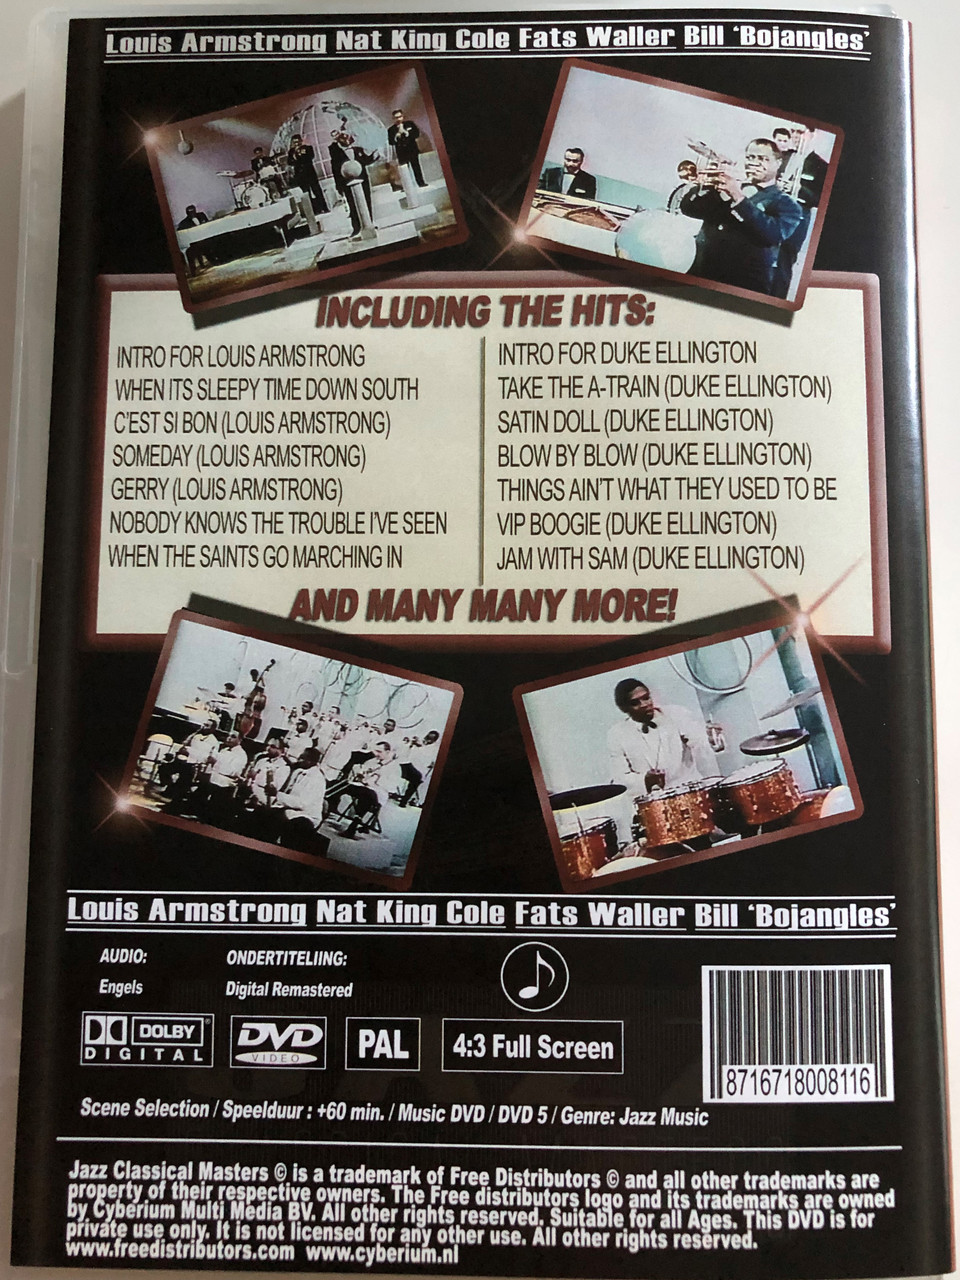 Jazz Classical Masters - Vol  3 / DVD / Fats Waller, louis Armstrong, Nat  King Cole, Bill